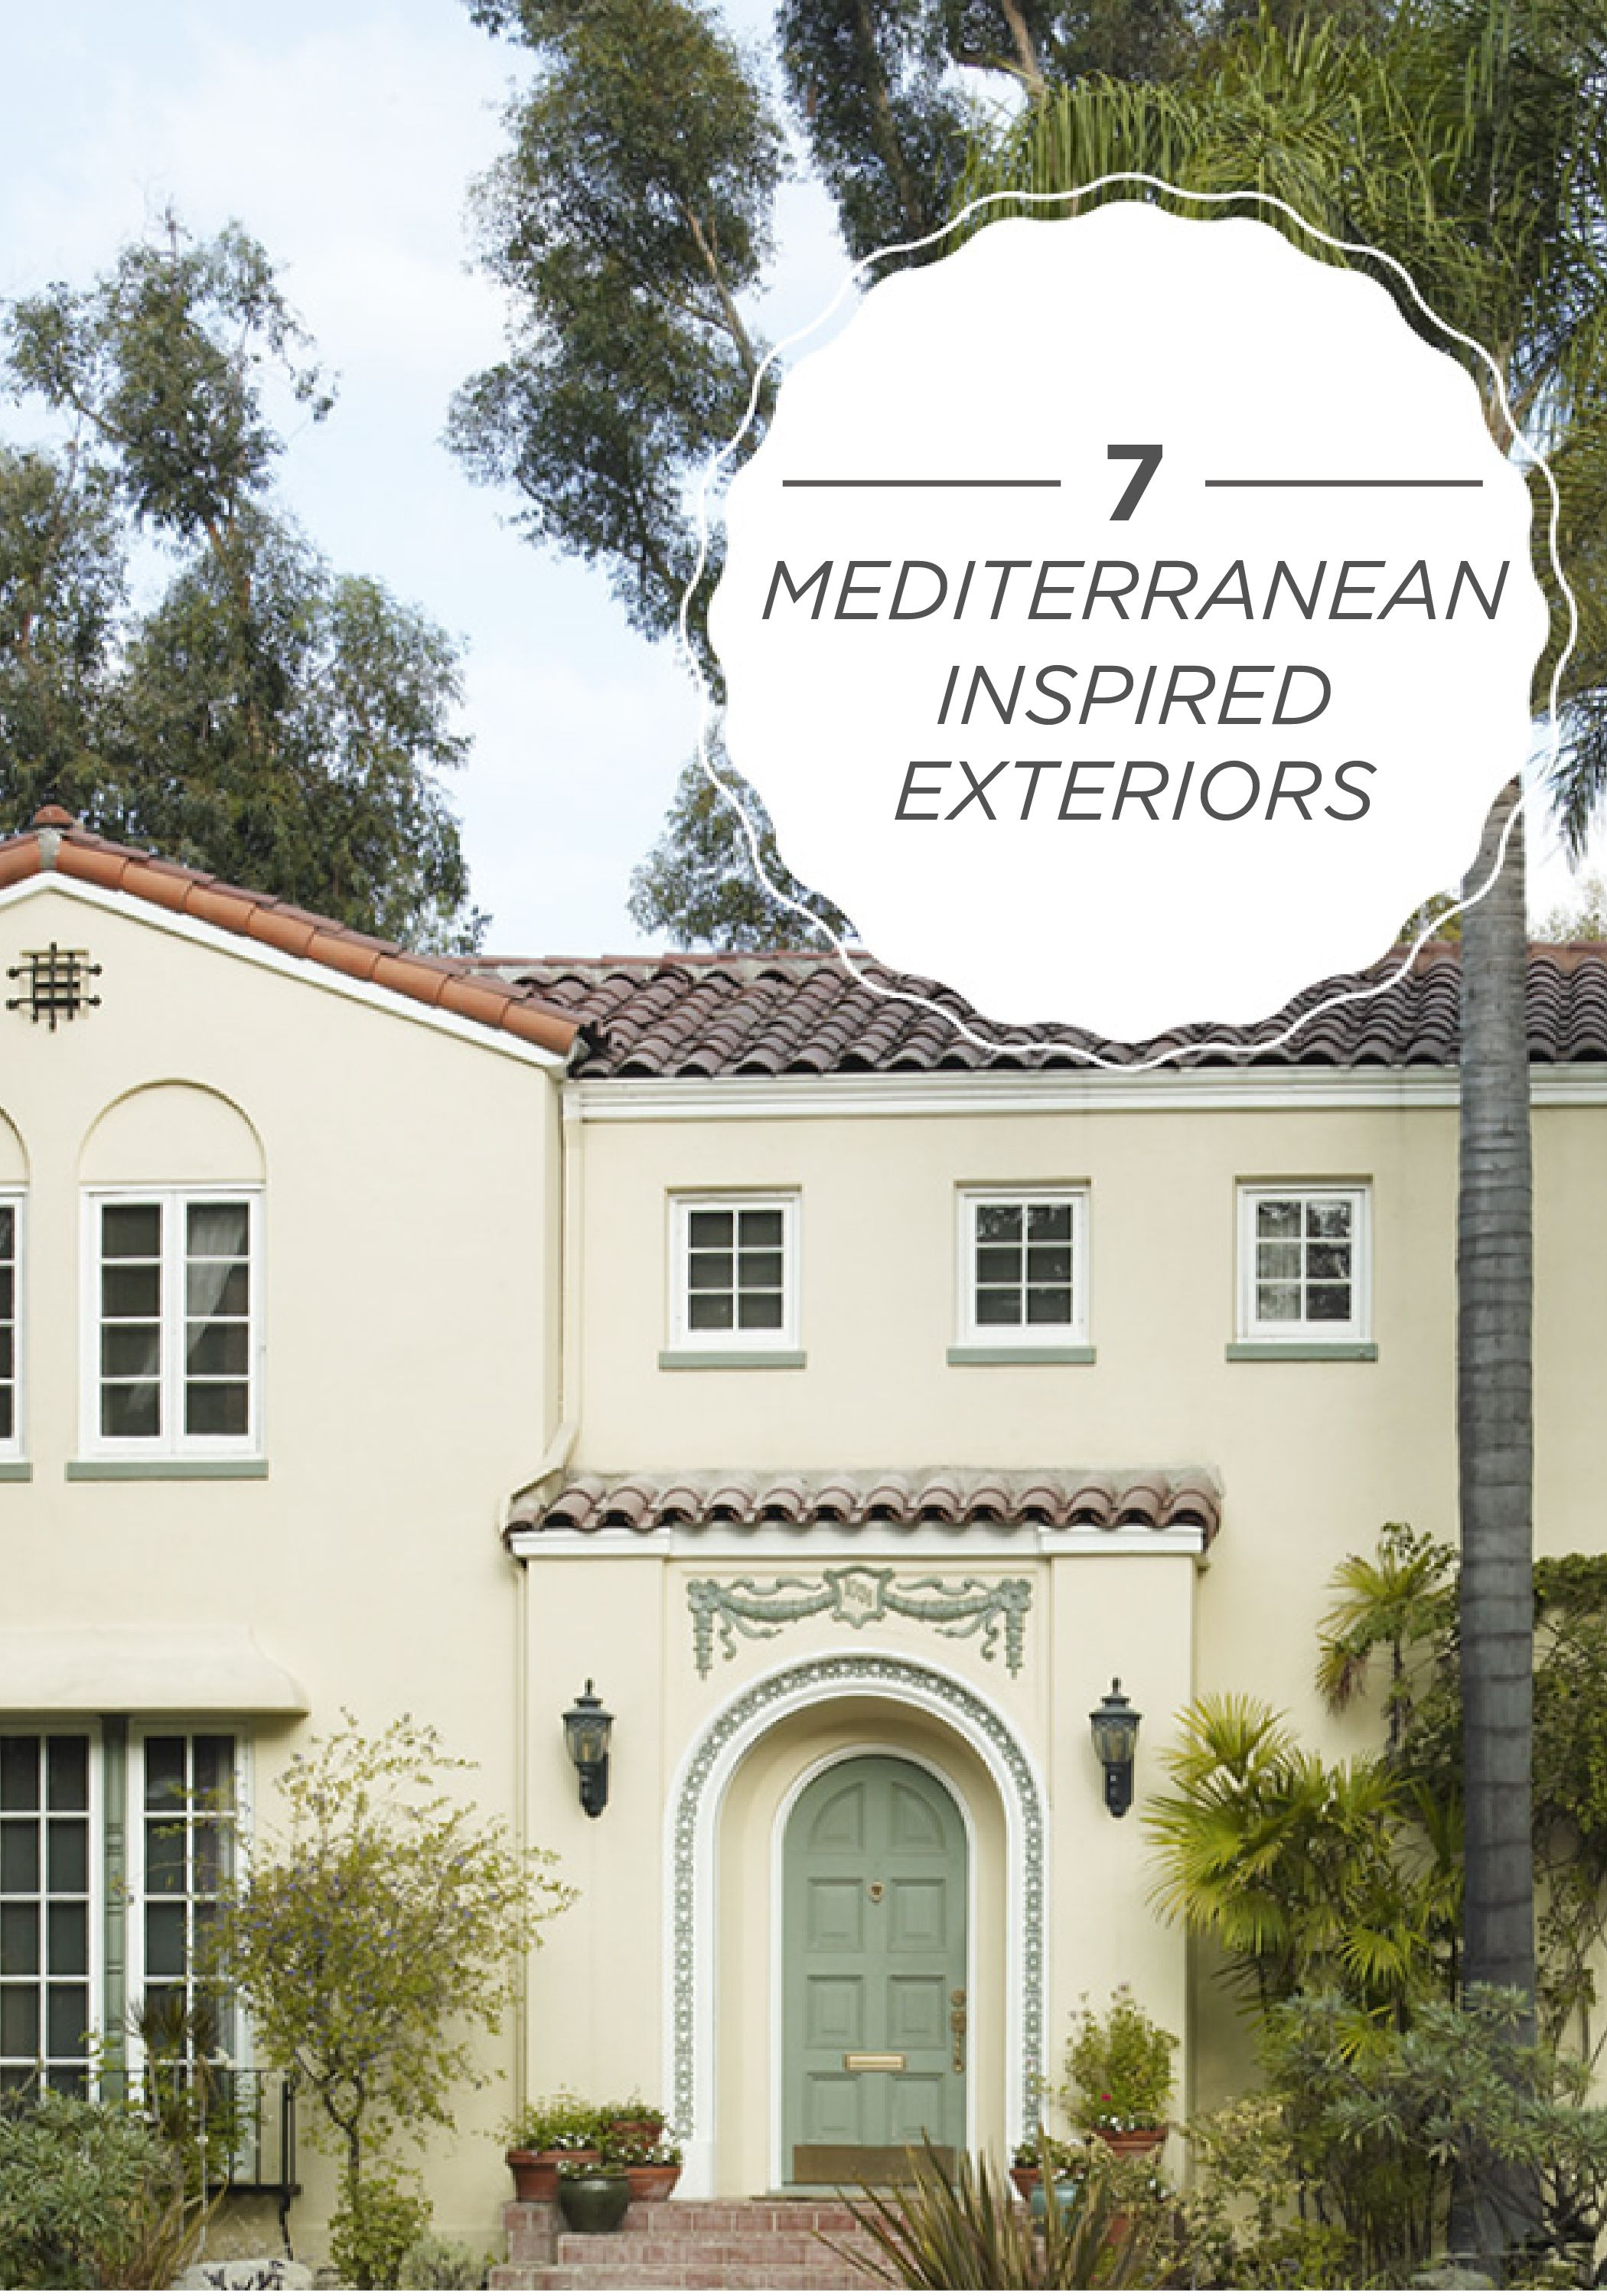 Love Looking At Stunning Architecture For Exterior Home Improvement Ideas Look No Further Than These 7 Magnificent Mediterranean Inspired Homes The